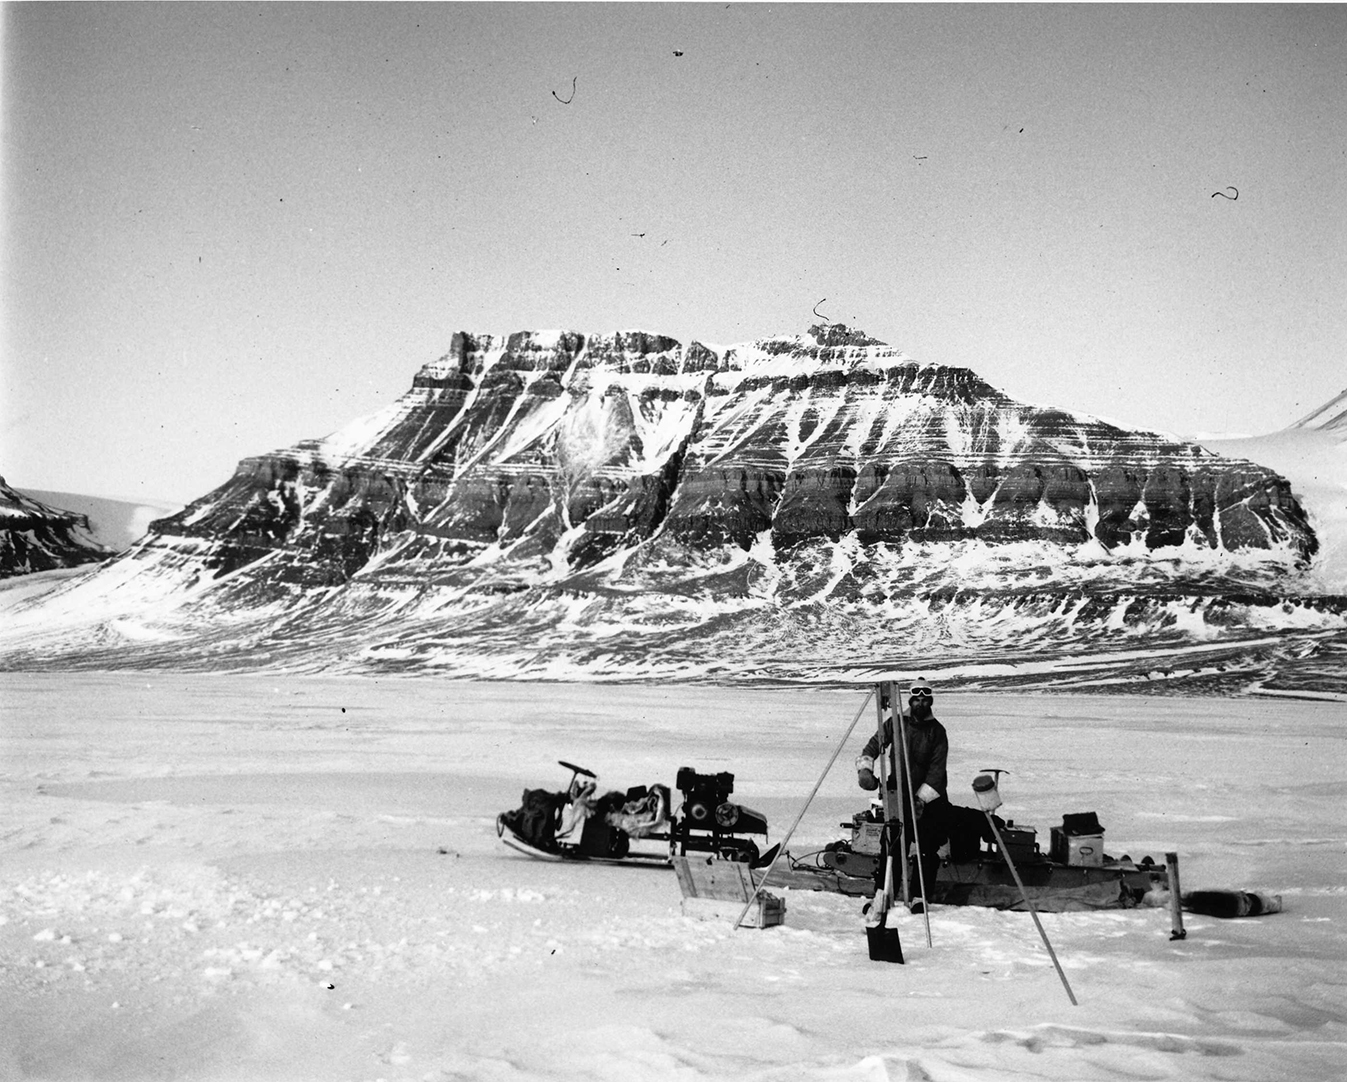 Defence Research and Development Canada (DRDC) has been conducting research at Alert and in the High Arctic for the past 60 years. DRDC Archive